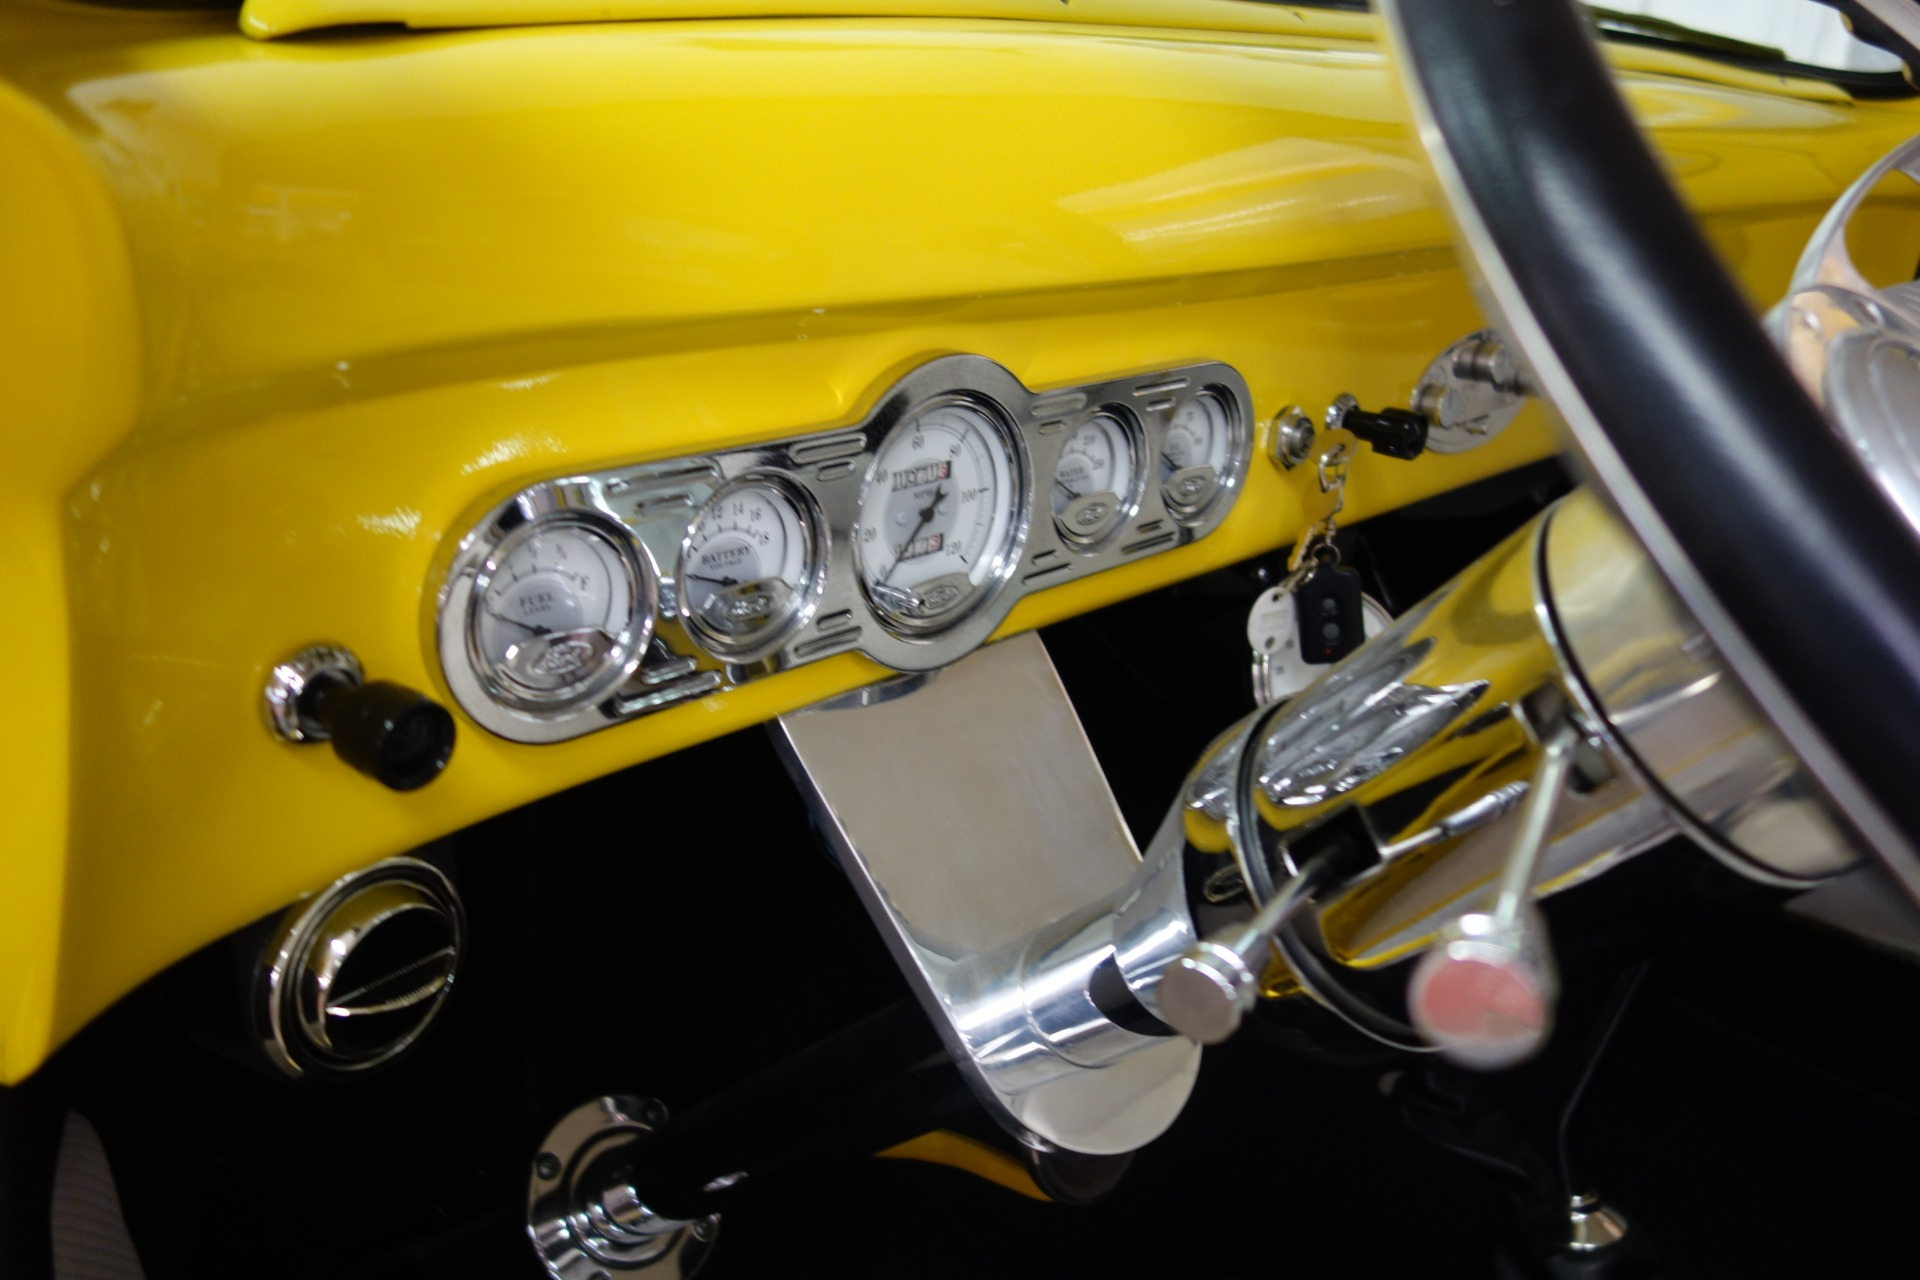 Used 1953 Ford Pickup -F100 - STREET ROD TRUCK - HIGH QUALITY BUILD - | Mundelein, IL